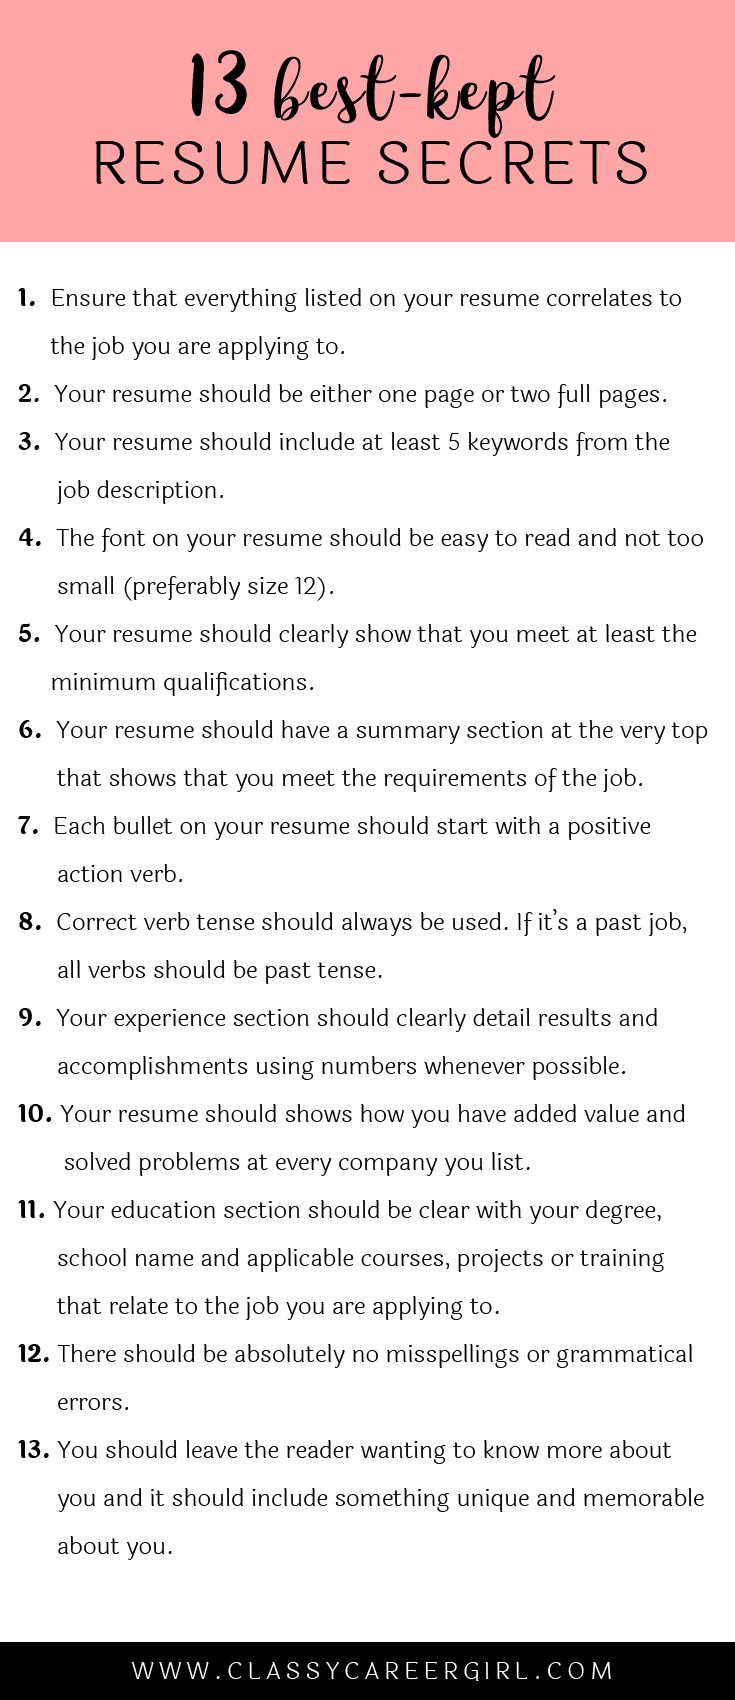 Opposenewapstandardsus  Terrific  Ideas About Resume On Pinterest  Cv Format Resume Cv And  With Outstanding Some Hiring Managers Will Toss Your Resume Out If You Dont Know These  With Nice Make Your Own Resume Also Resume Technical Skills In Addition Good Resume Format And Sous Chef Resume As Well As Resume For Server Additionally Musician Resume From Pinterestcom With Opposenewapstandardsus  Outstanding  Ideas About Resume On Pinterest  Cv Format Resume Cv And  With Nice Some Hiring Managers Will Toss Your Resume Out If You Dont Know These  And Terrific Make Your Own Resume Also Resume Technical Skills In Addition Good Resume Format From Pinterestcom